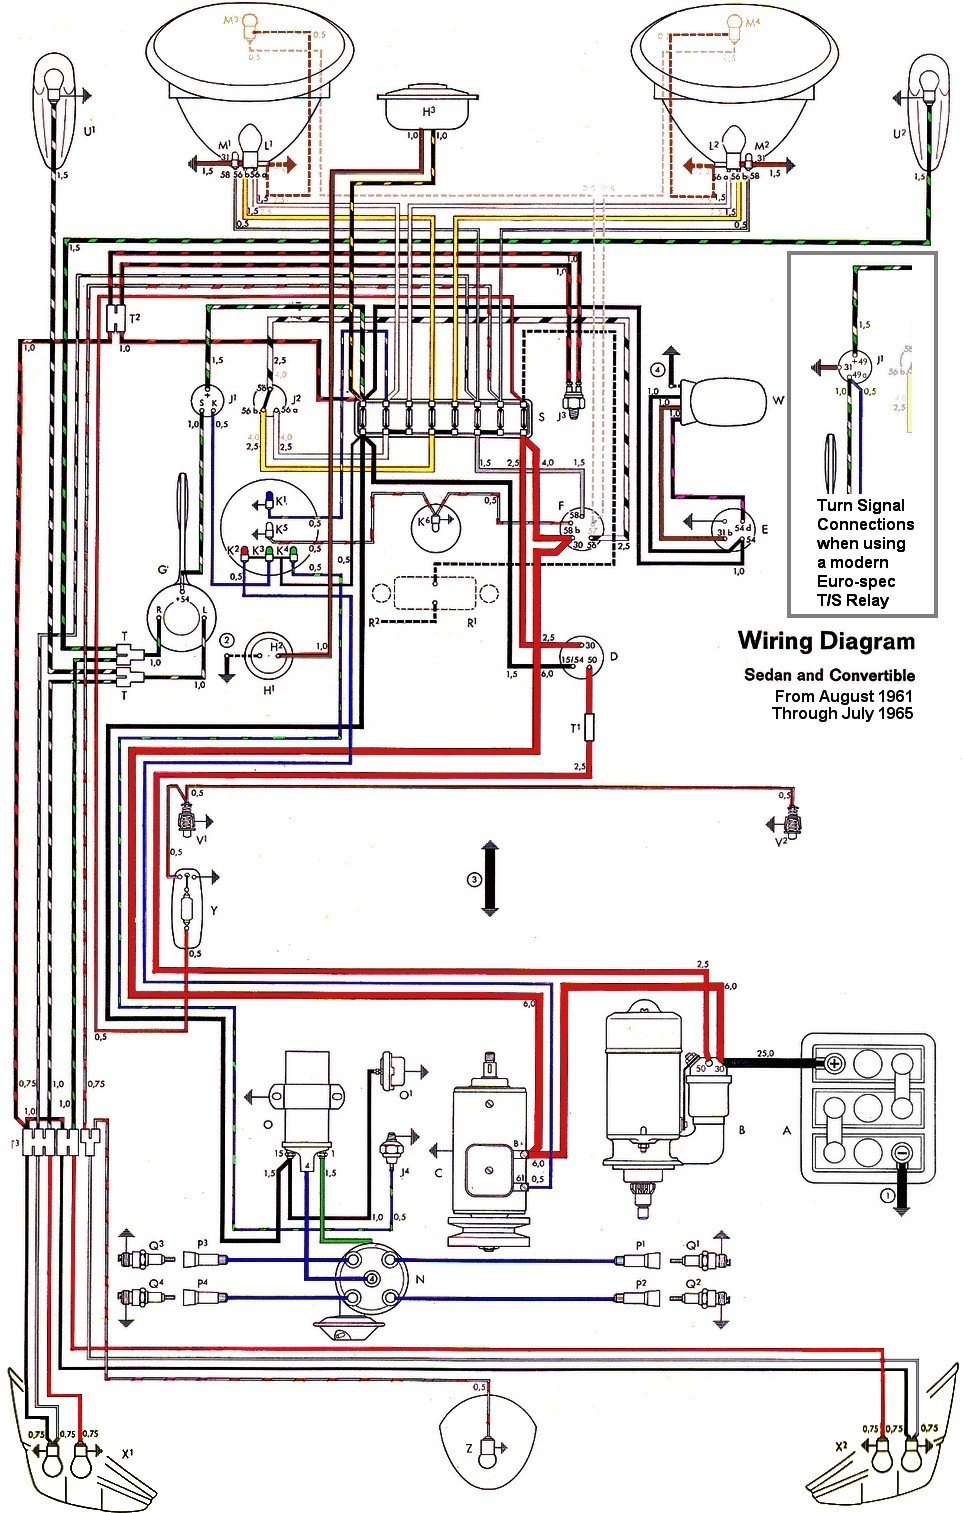 thesamba com type 1 wiring diagrams rh thesamba com 73 vw bug wiring diagram 1973 VW Beetle Wiring Diagram